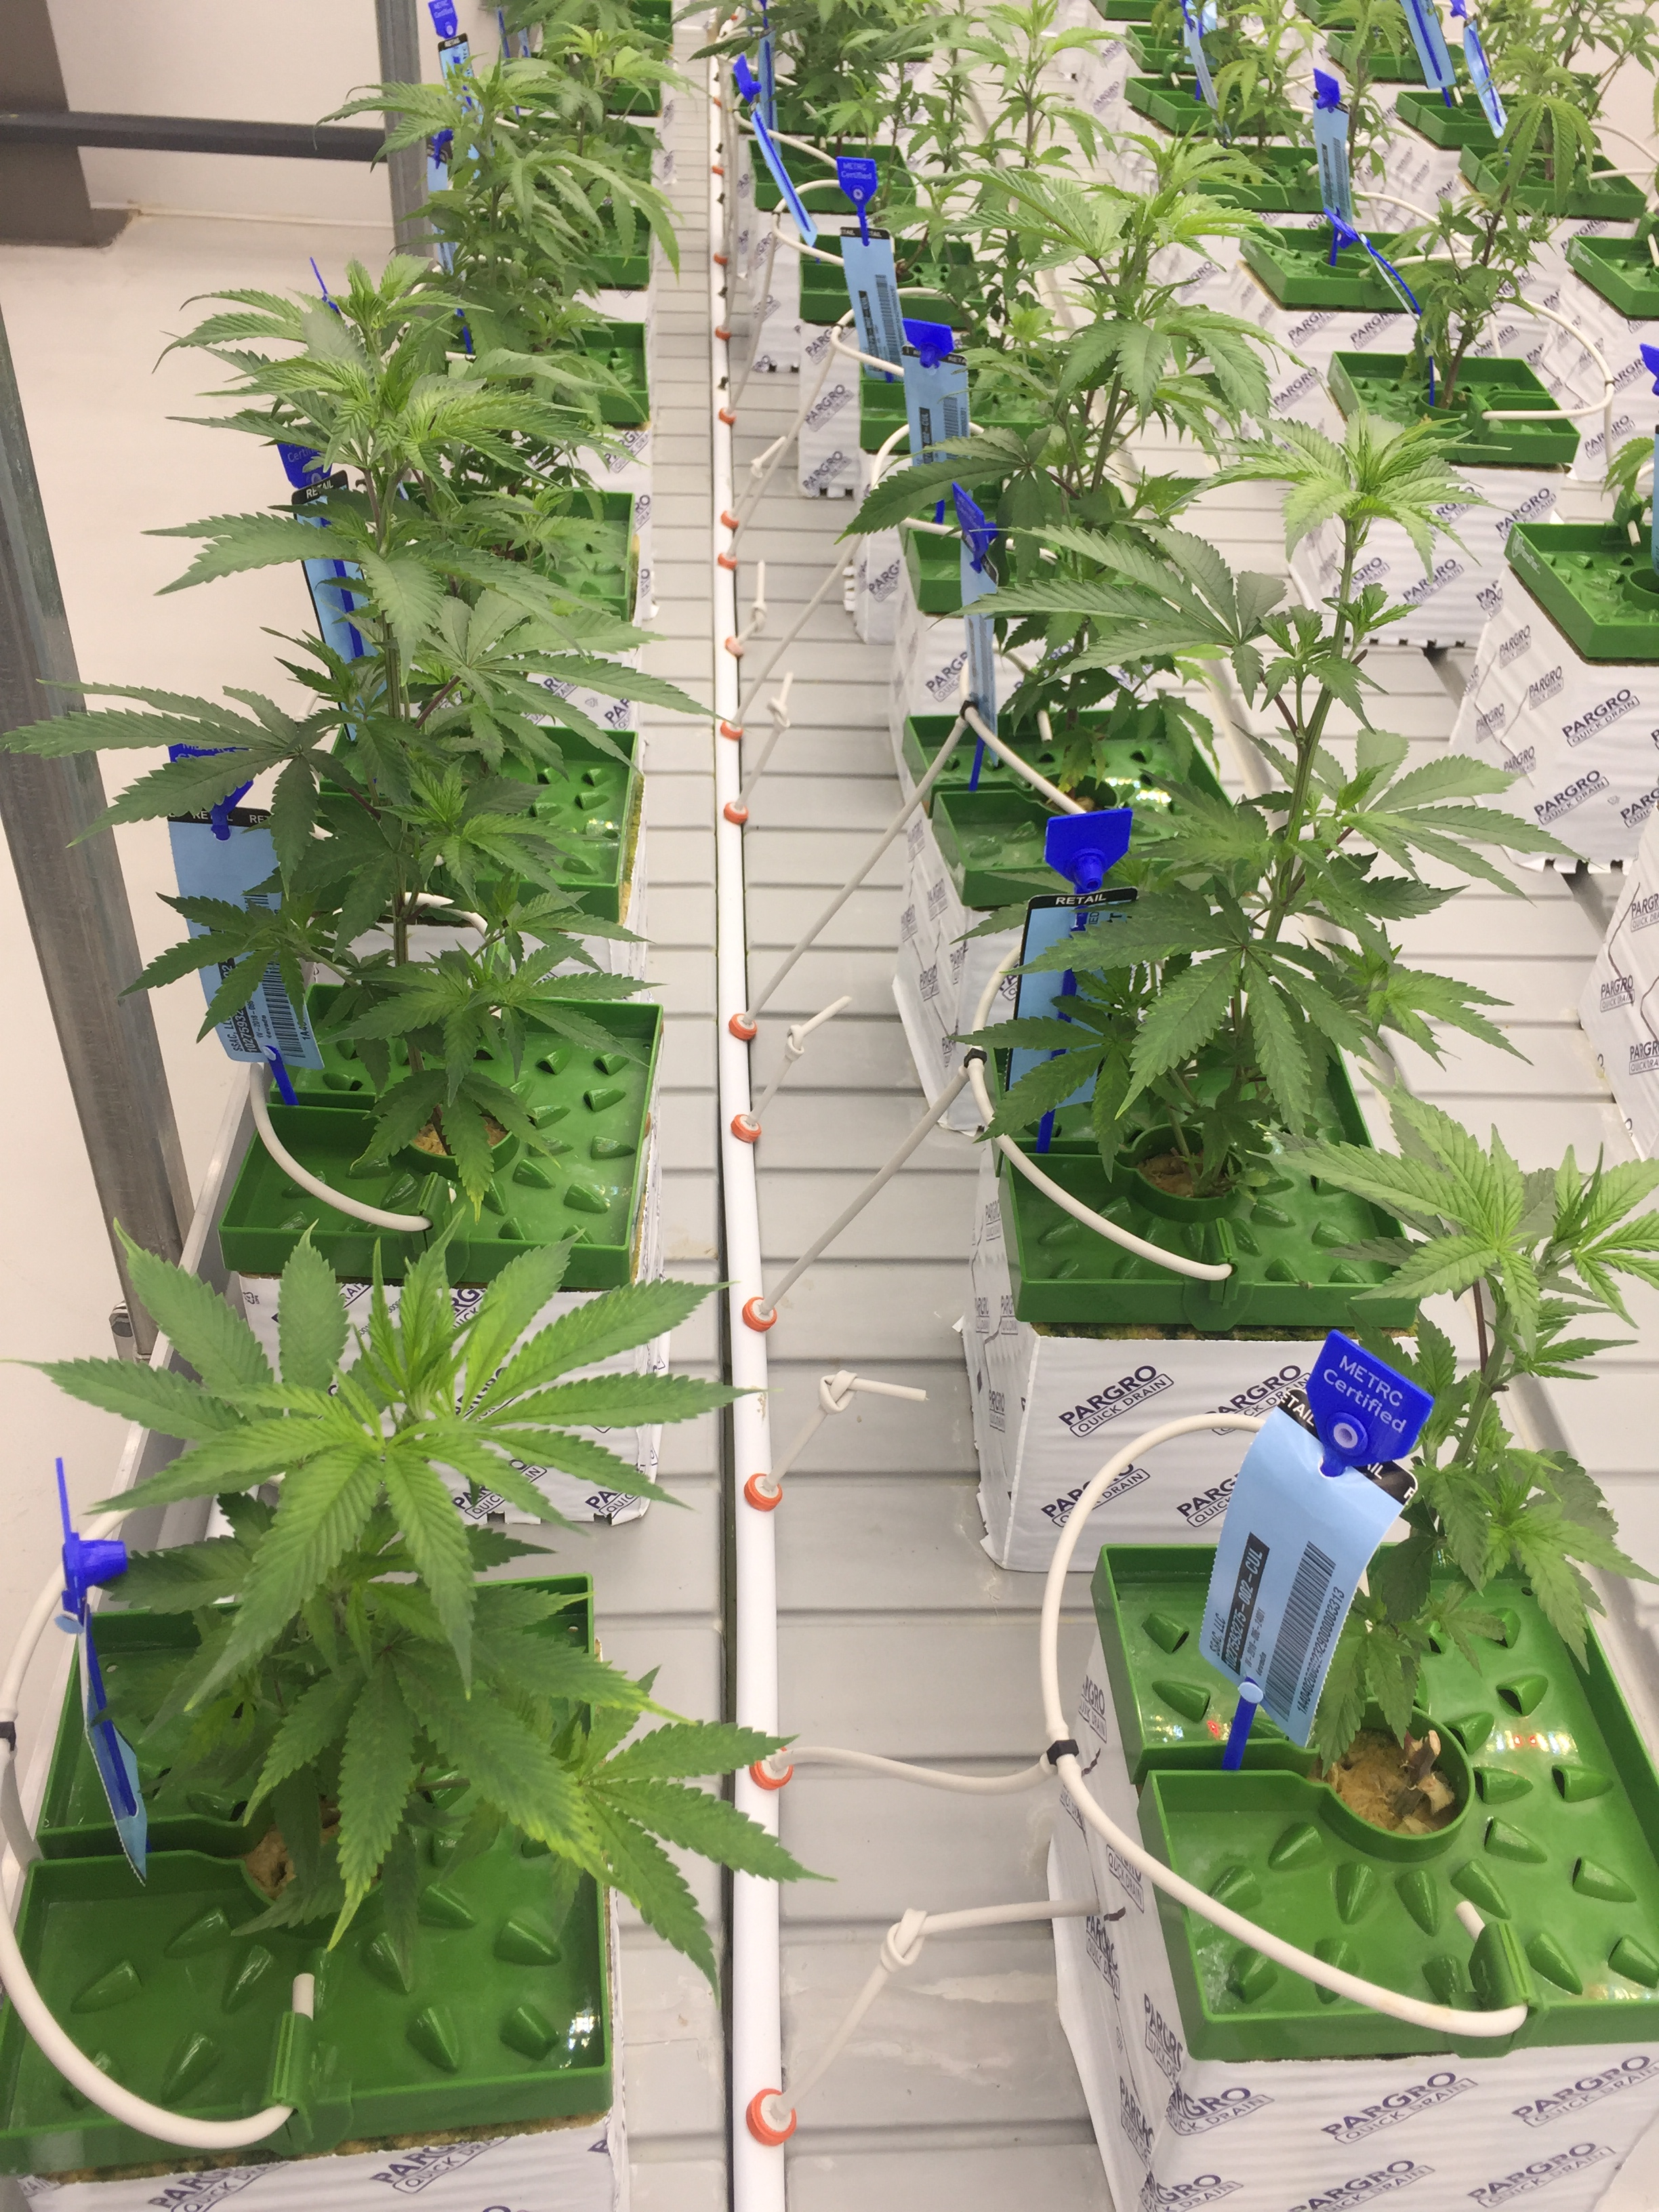 Our role is to give you the freedom and technology to develop and refine the growing process, so you can continue to grow the best plants possible.